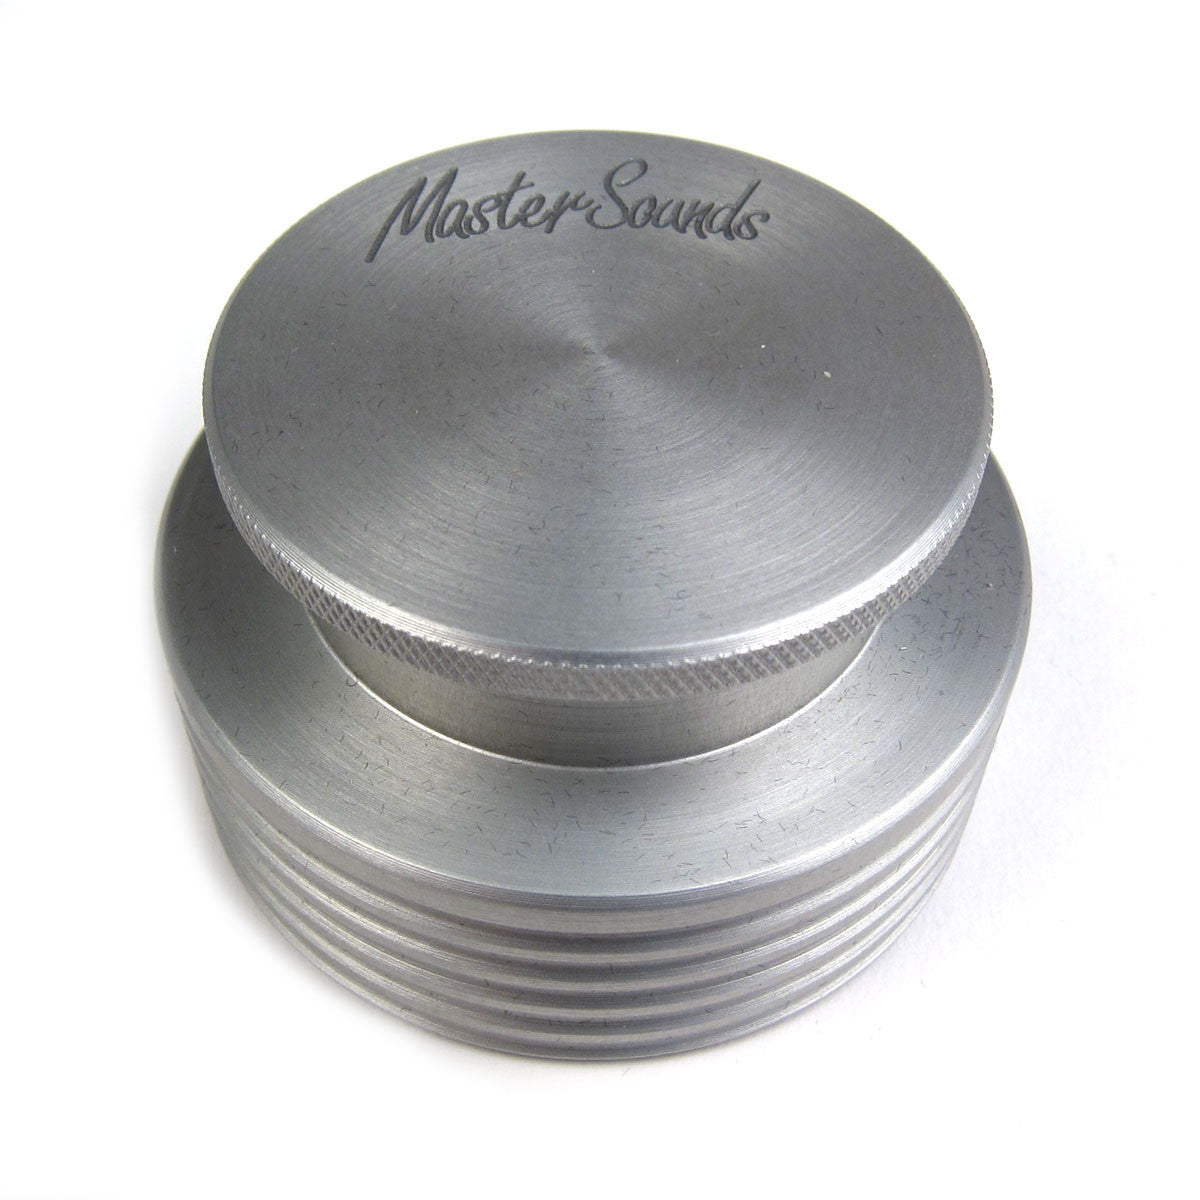 MasterSounds: Turntable Weight - Silver